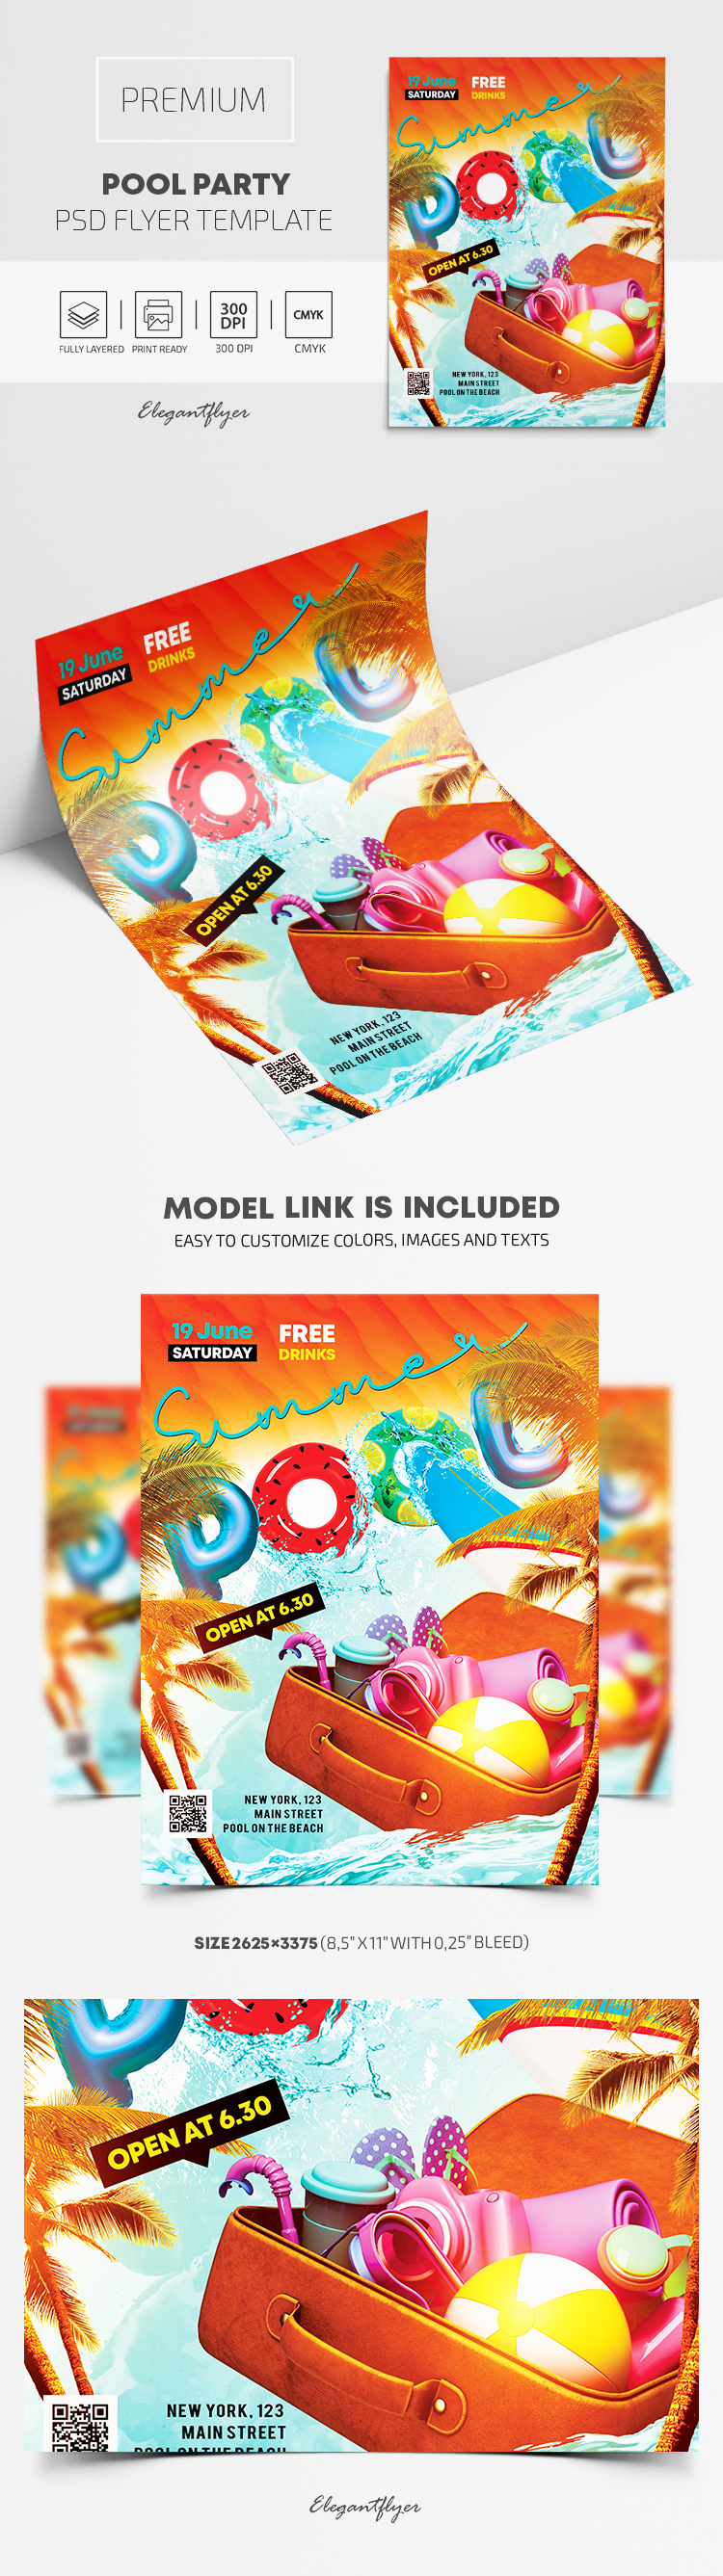 Summer Pool Party – Premium PSD Flyer Template